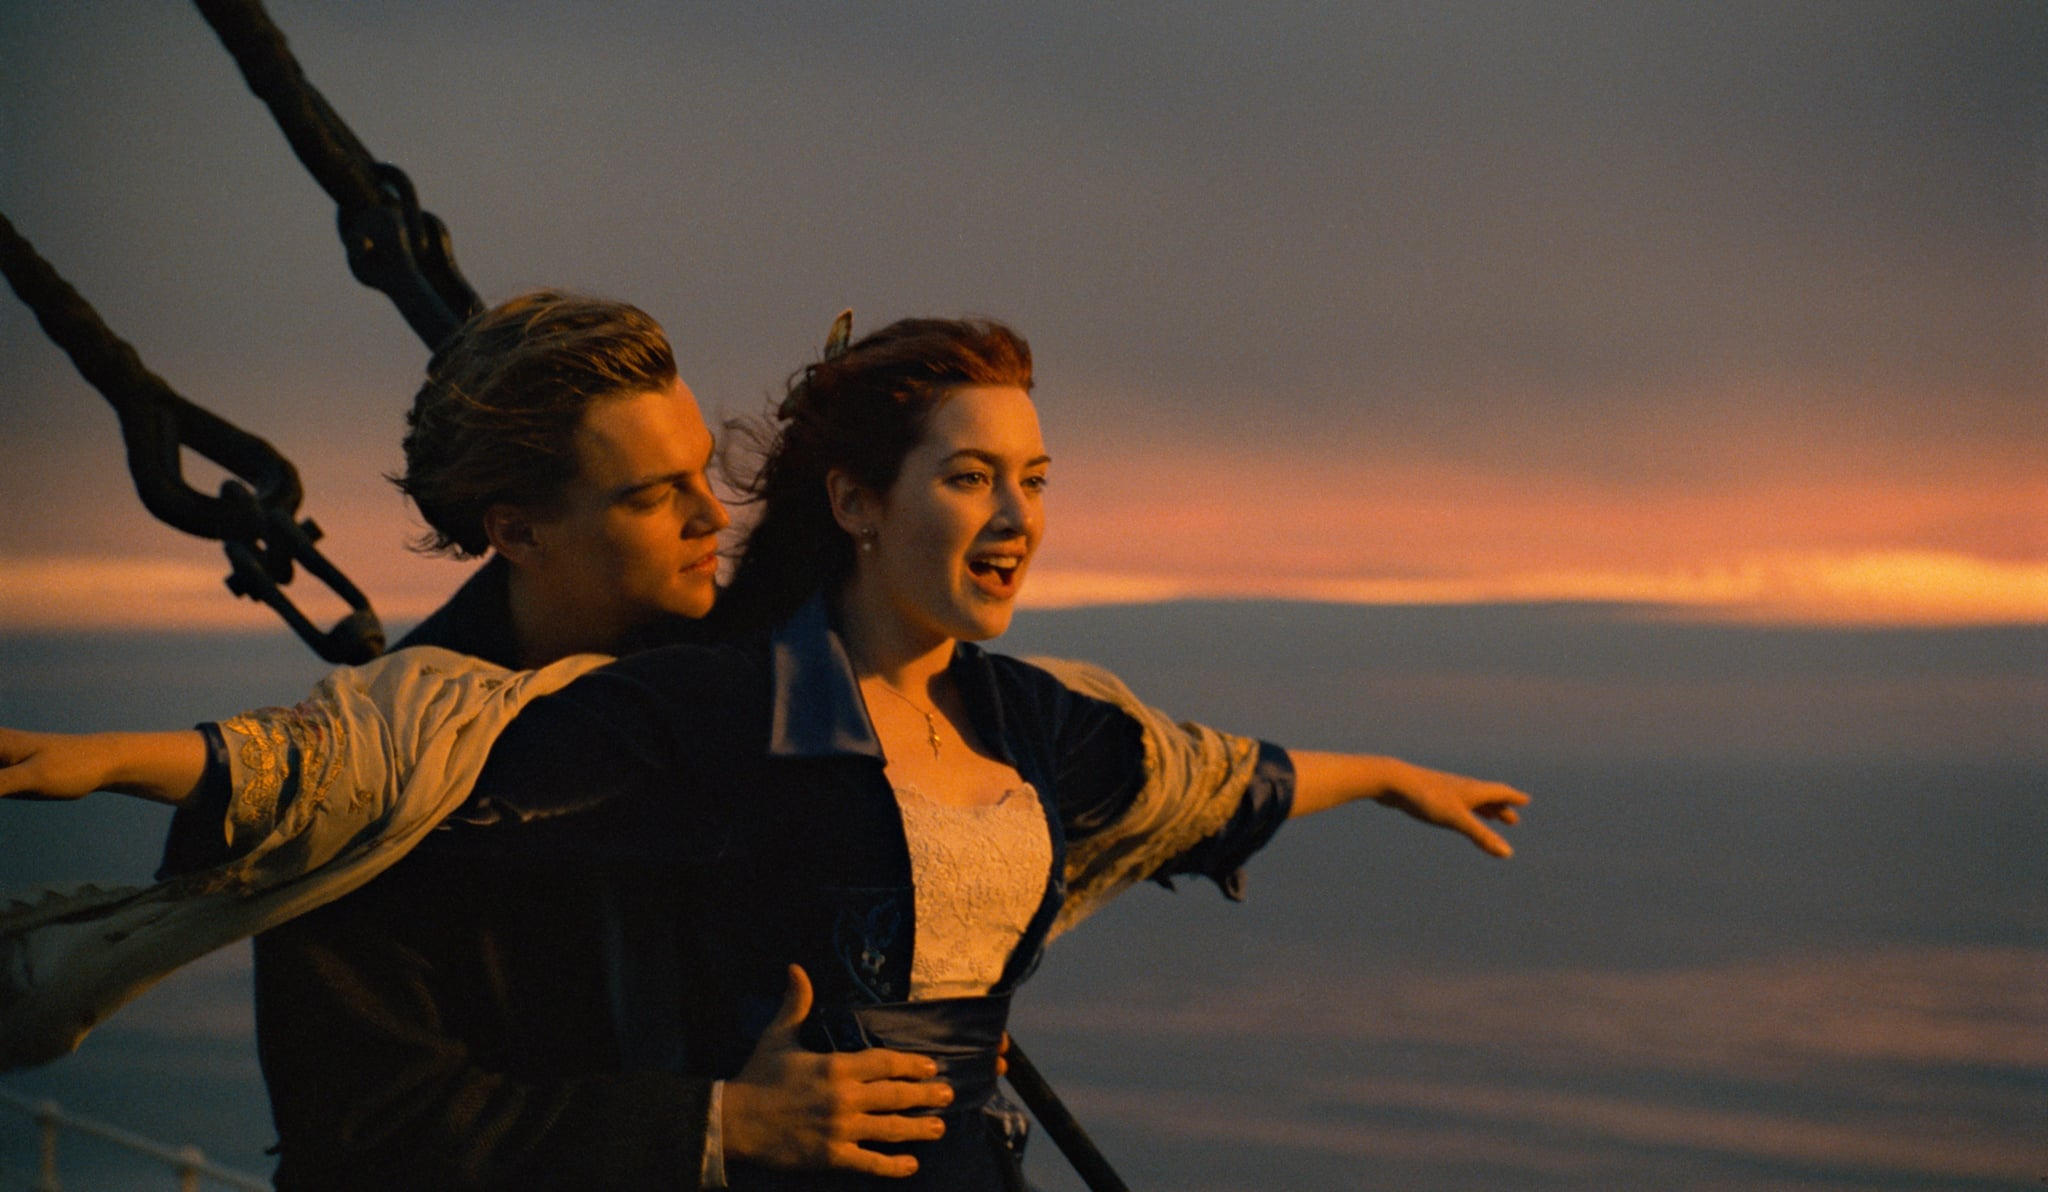 Itu0027s been two decades since Jack and Roseu0027s ill-fated romance broke our hearts and turned  never let go  into the most romantic vow one could make.  sc 1 st  Popsugar & Titanic Movie Facts | POPSUGAR Entertainment